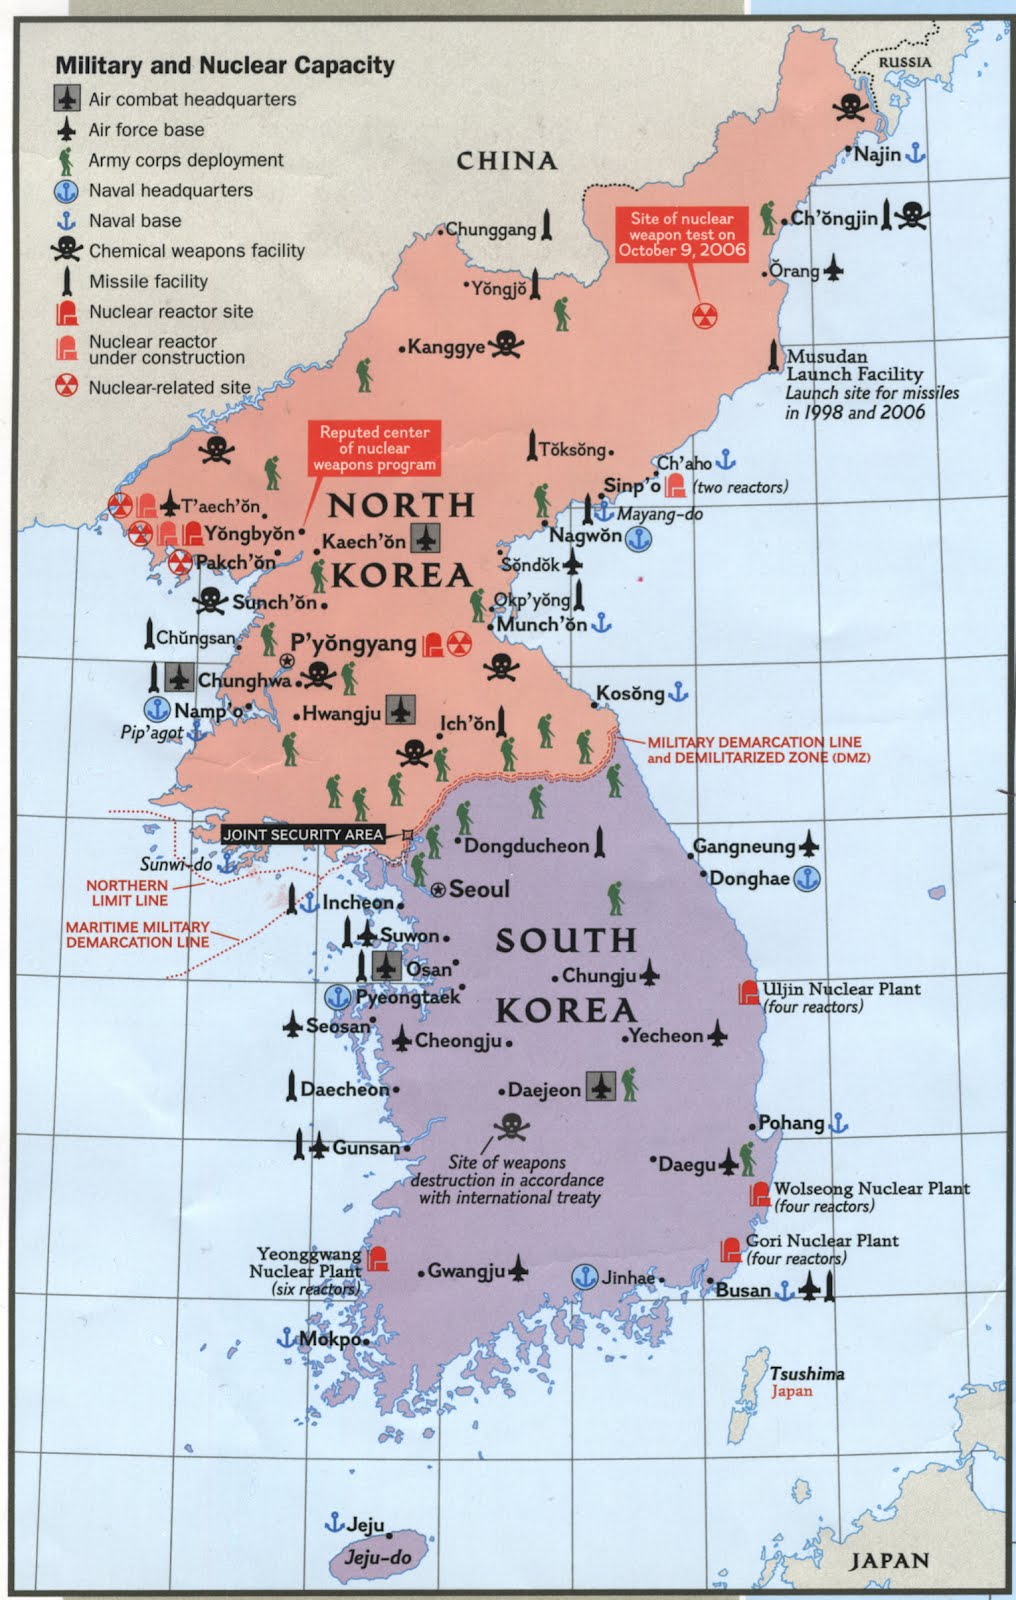 maps of north korean nuclear capacity available from ball state university libraries